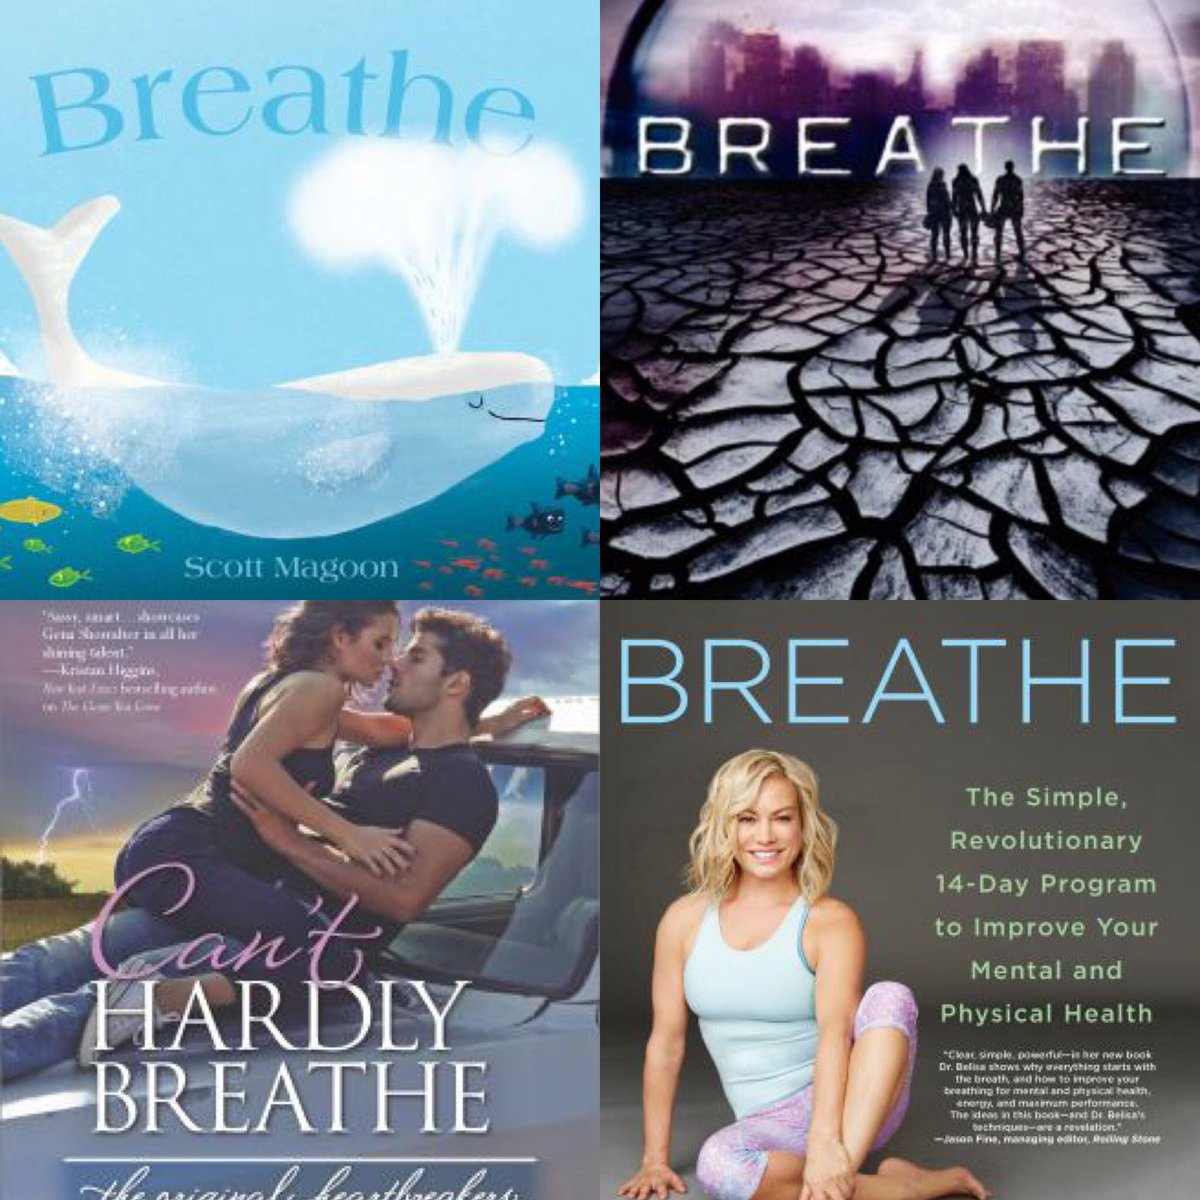 breathe the simple revolutionary 14day programme to improve your mental and physical health